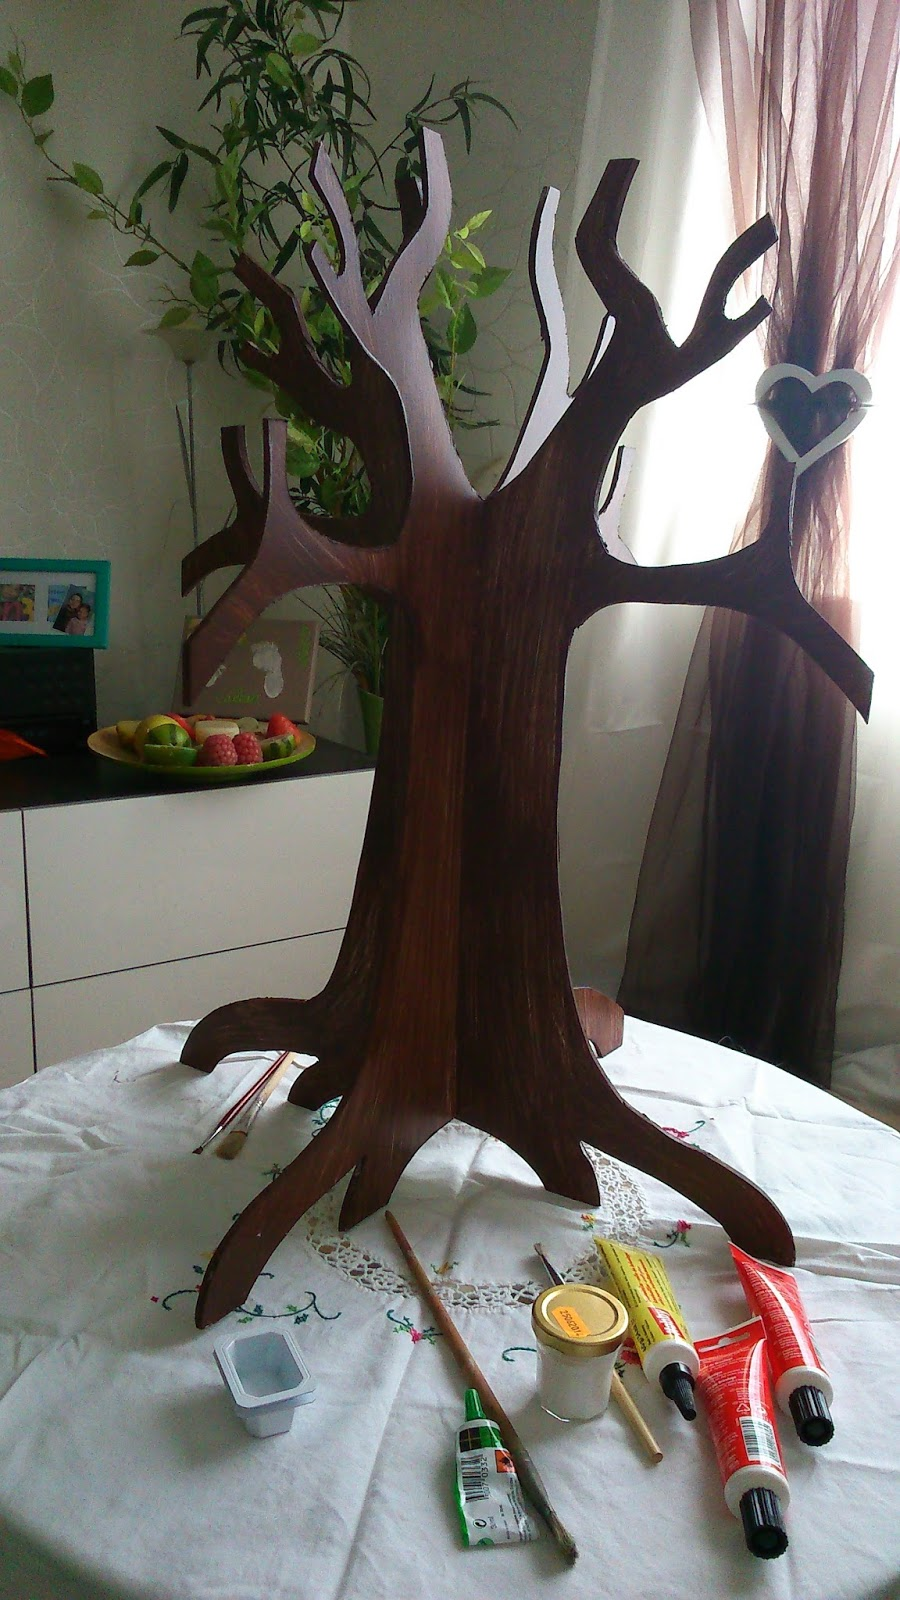 anelore scrap cie fabriquer un arbre en carton plume et papier cr pon. Black Bedroom Furniture Sets. Home Design Ideas